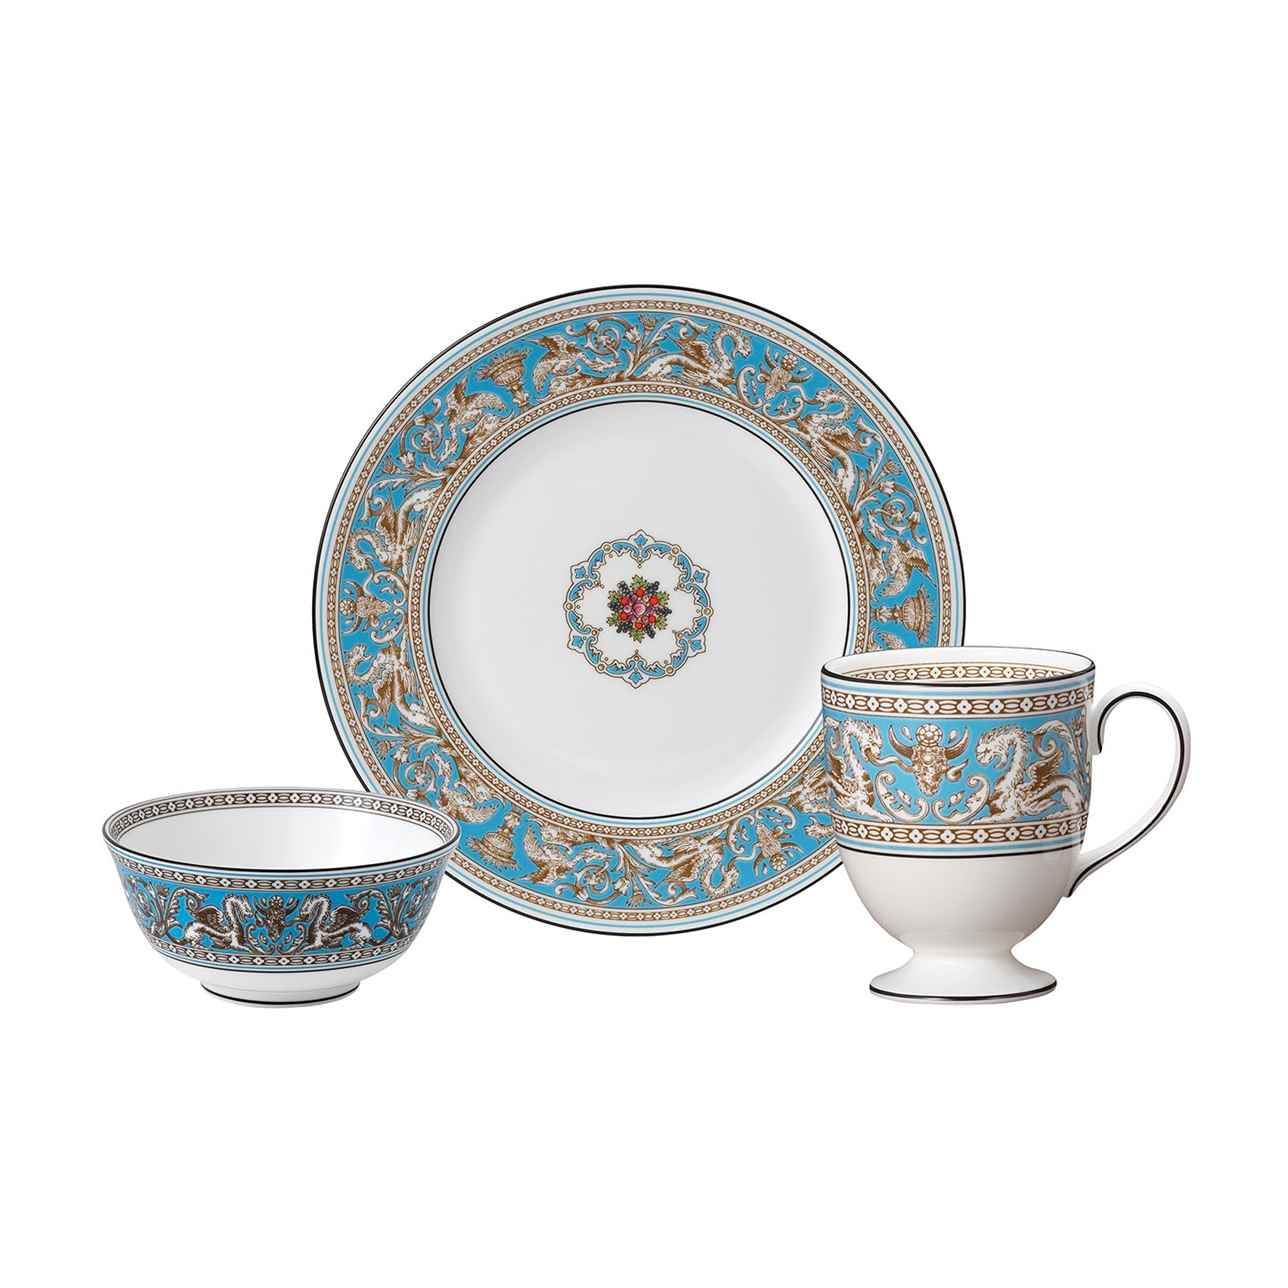 Florentine Turquoise 3 Piece Dinner Set